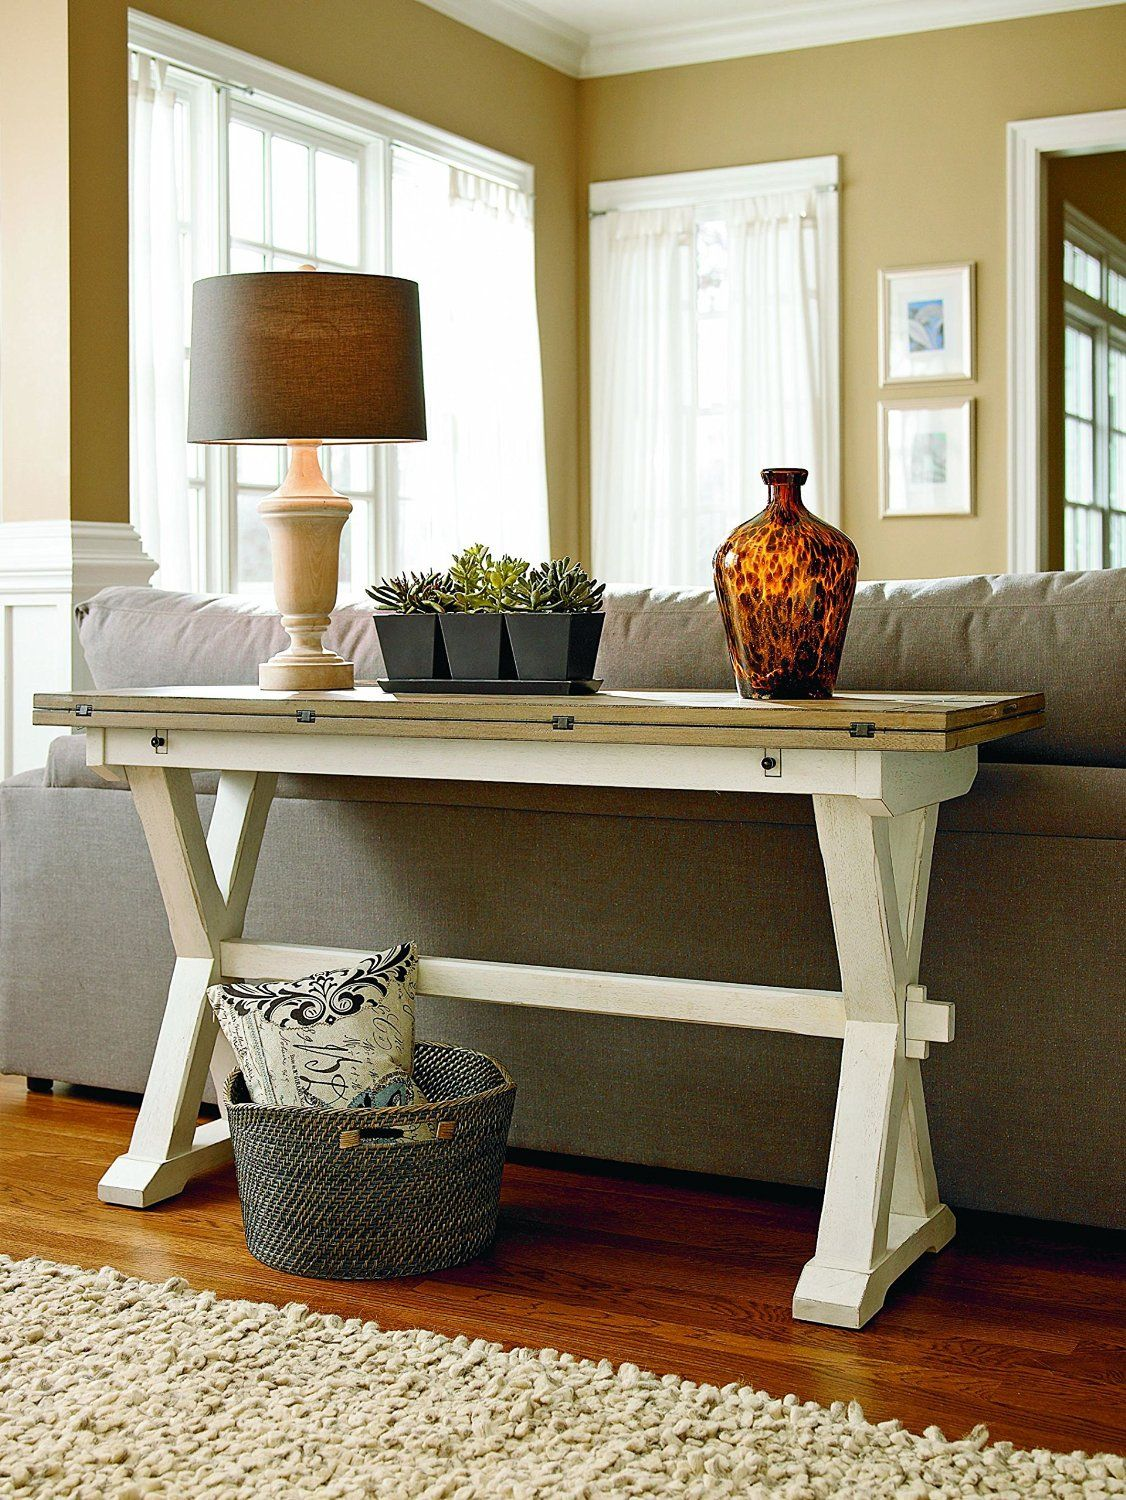 If You Already Have A Dining Table You Can Make Use Of A Flip Top Console Table As An Additional Dining Table If You Tend Universal Furniture Furniture Decor